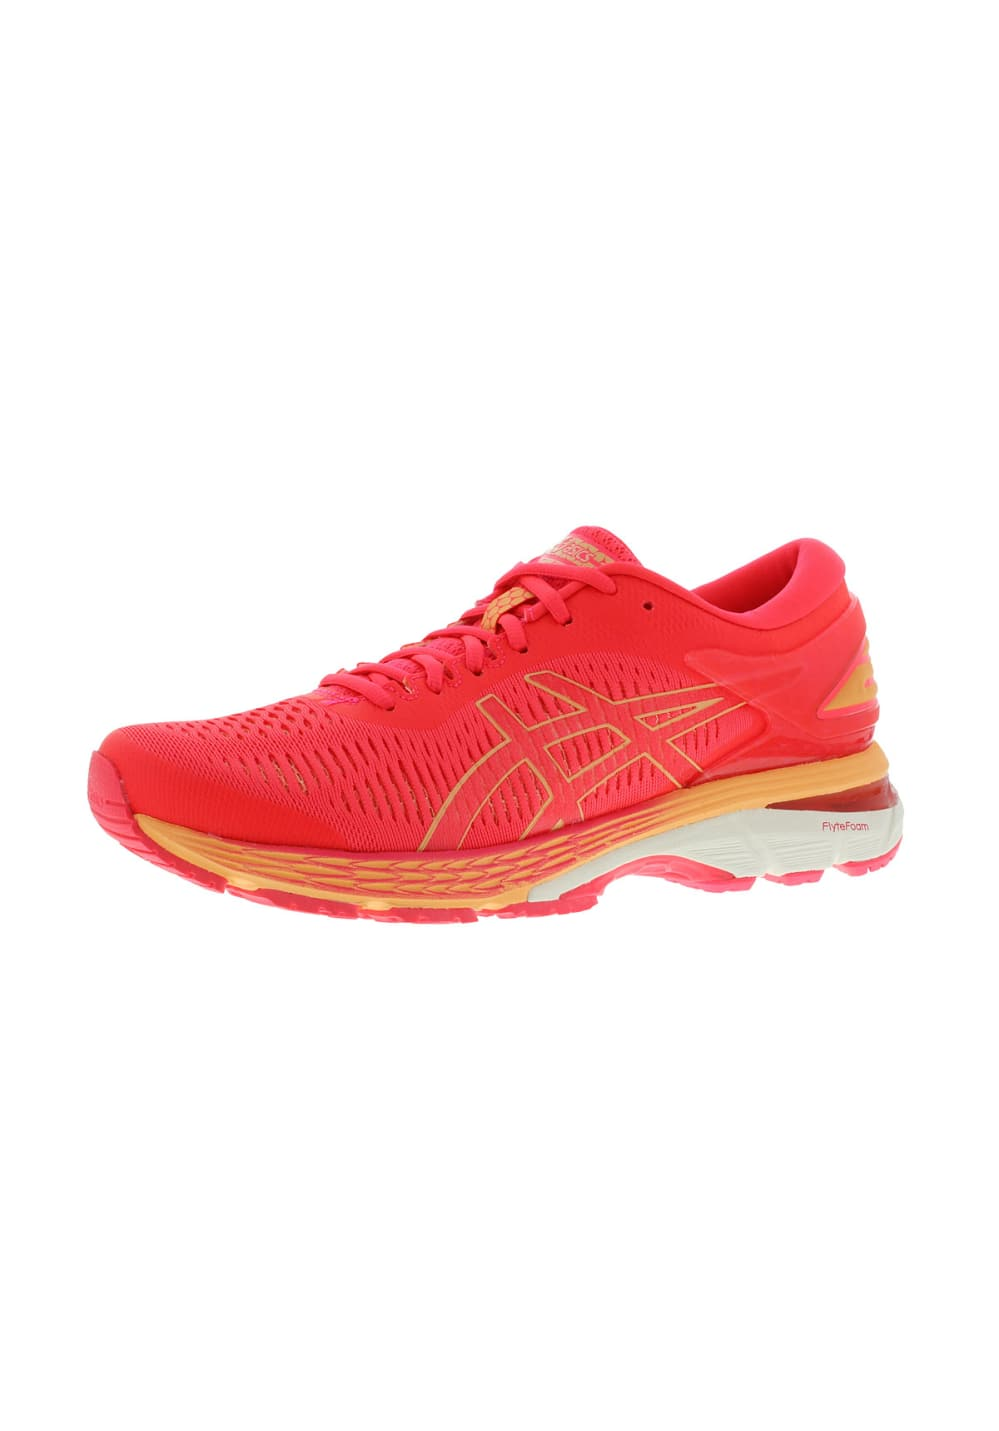 best sneakers 4bd85 527a8 ASICS GEL-Kayano 25 - Running shoes for Women - Pink